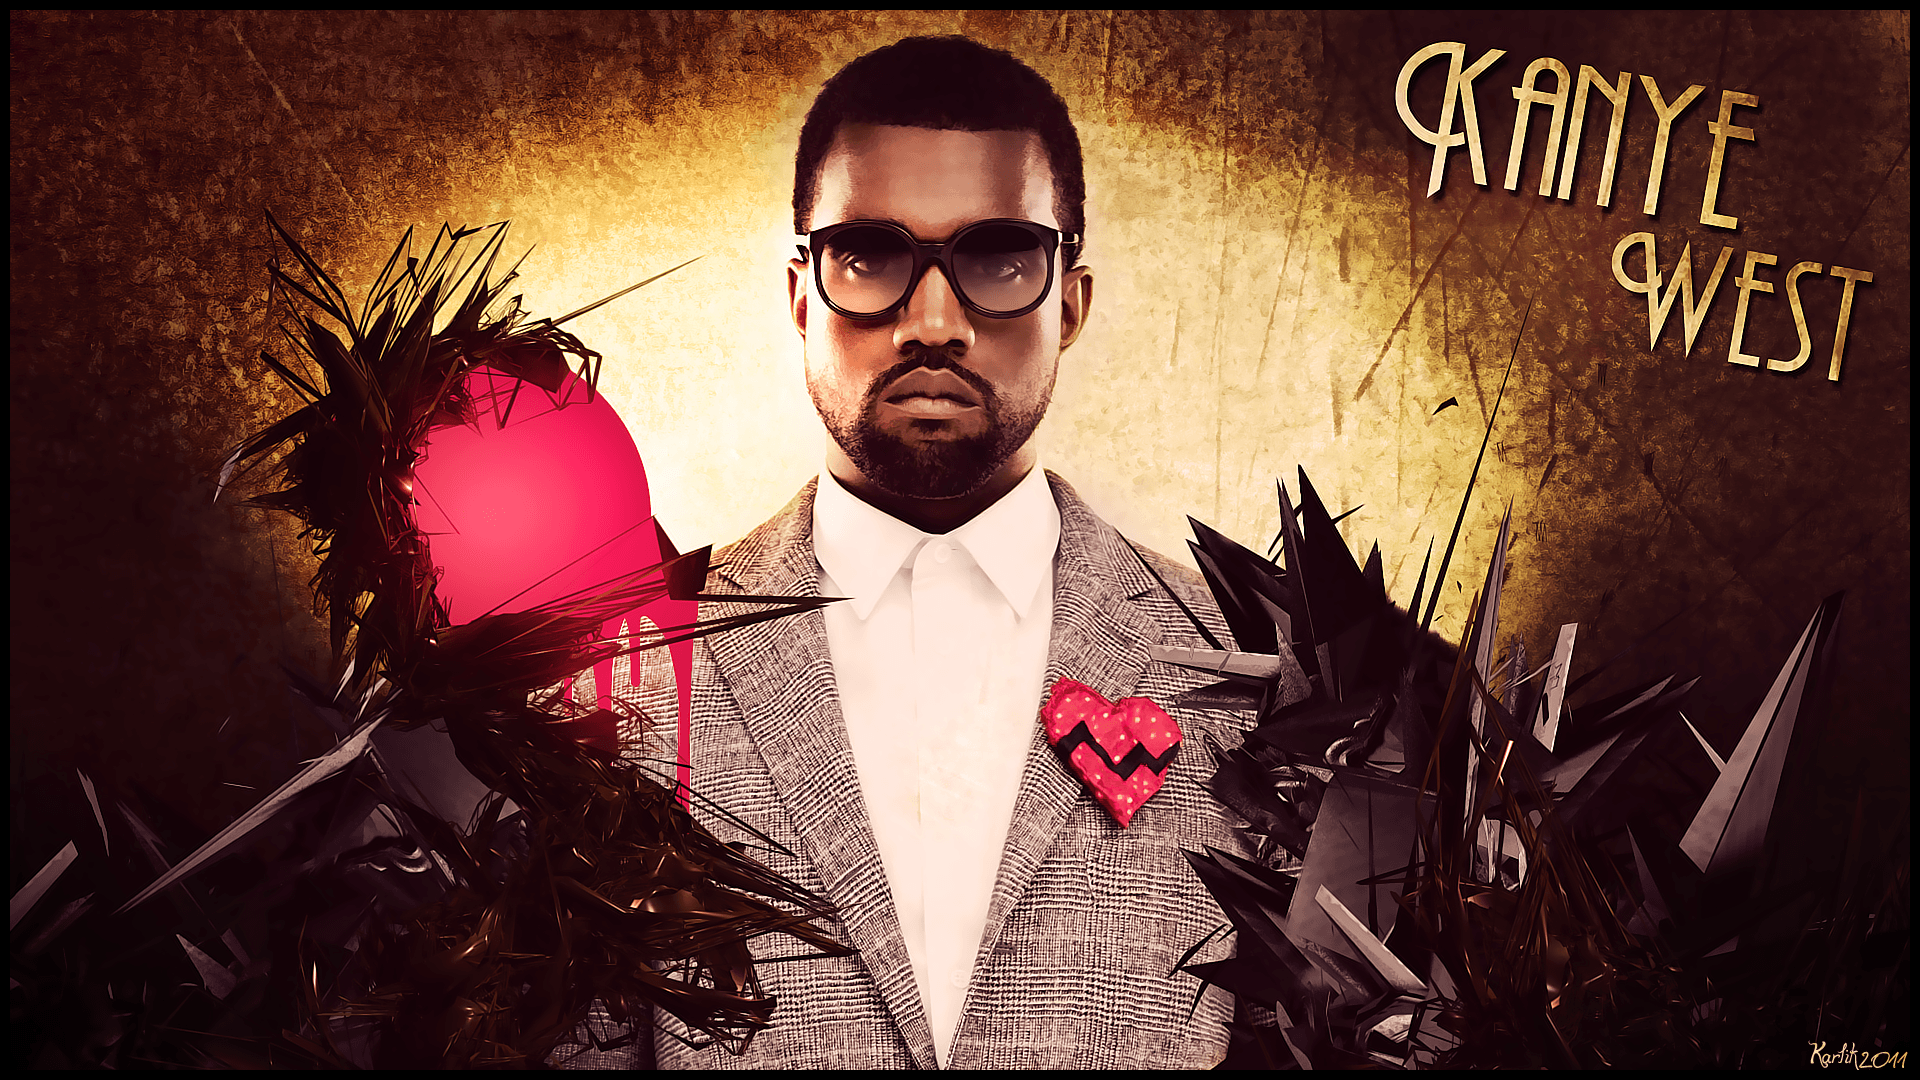 Desktop Kanye West HD Wallpapers | HD Wallpapers, Backgrounds ...